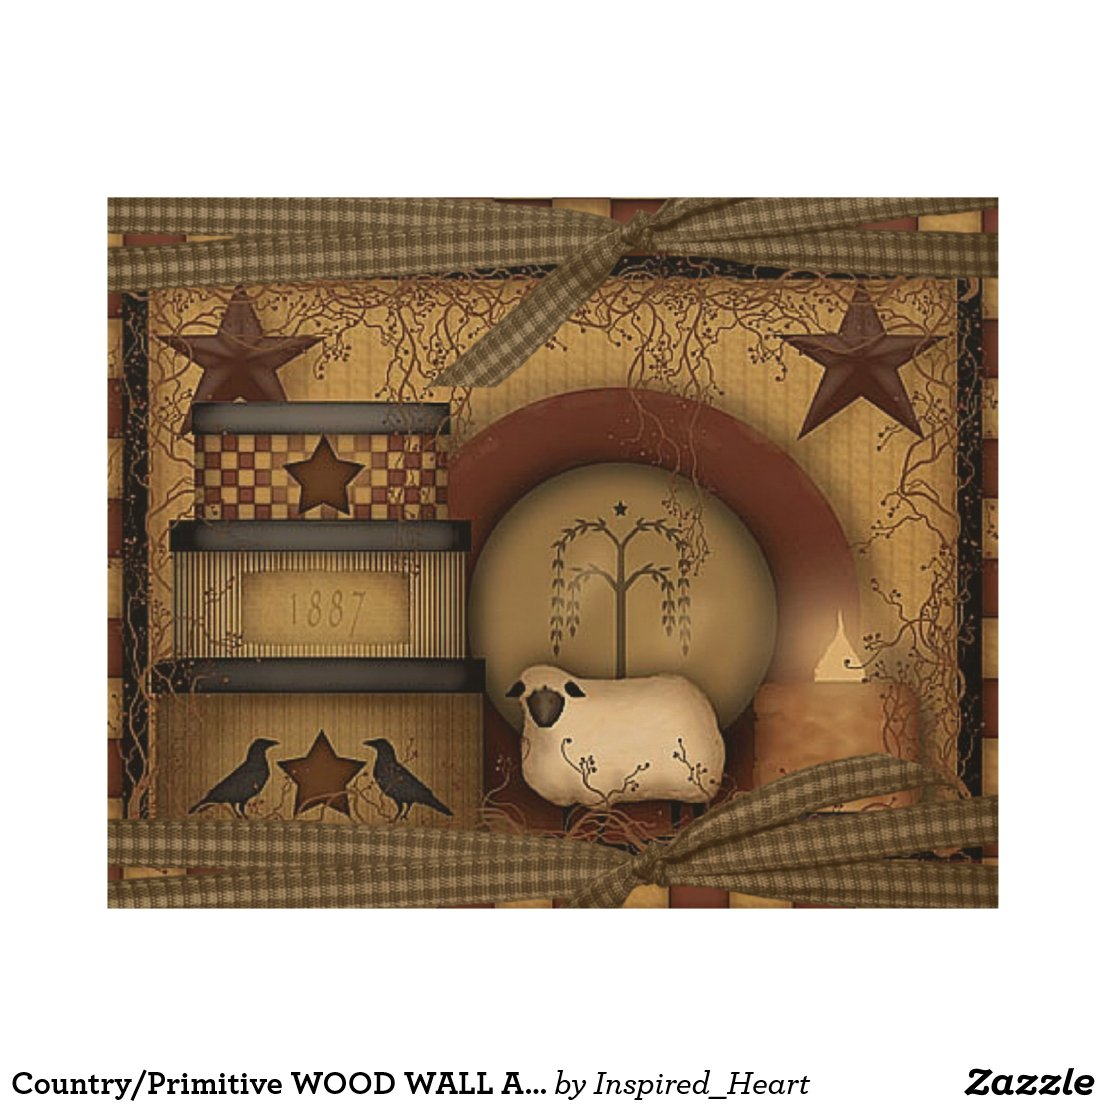 Country/Primitive WOOD WALL ART 10X8